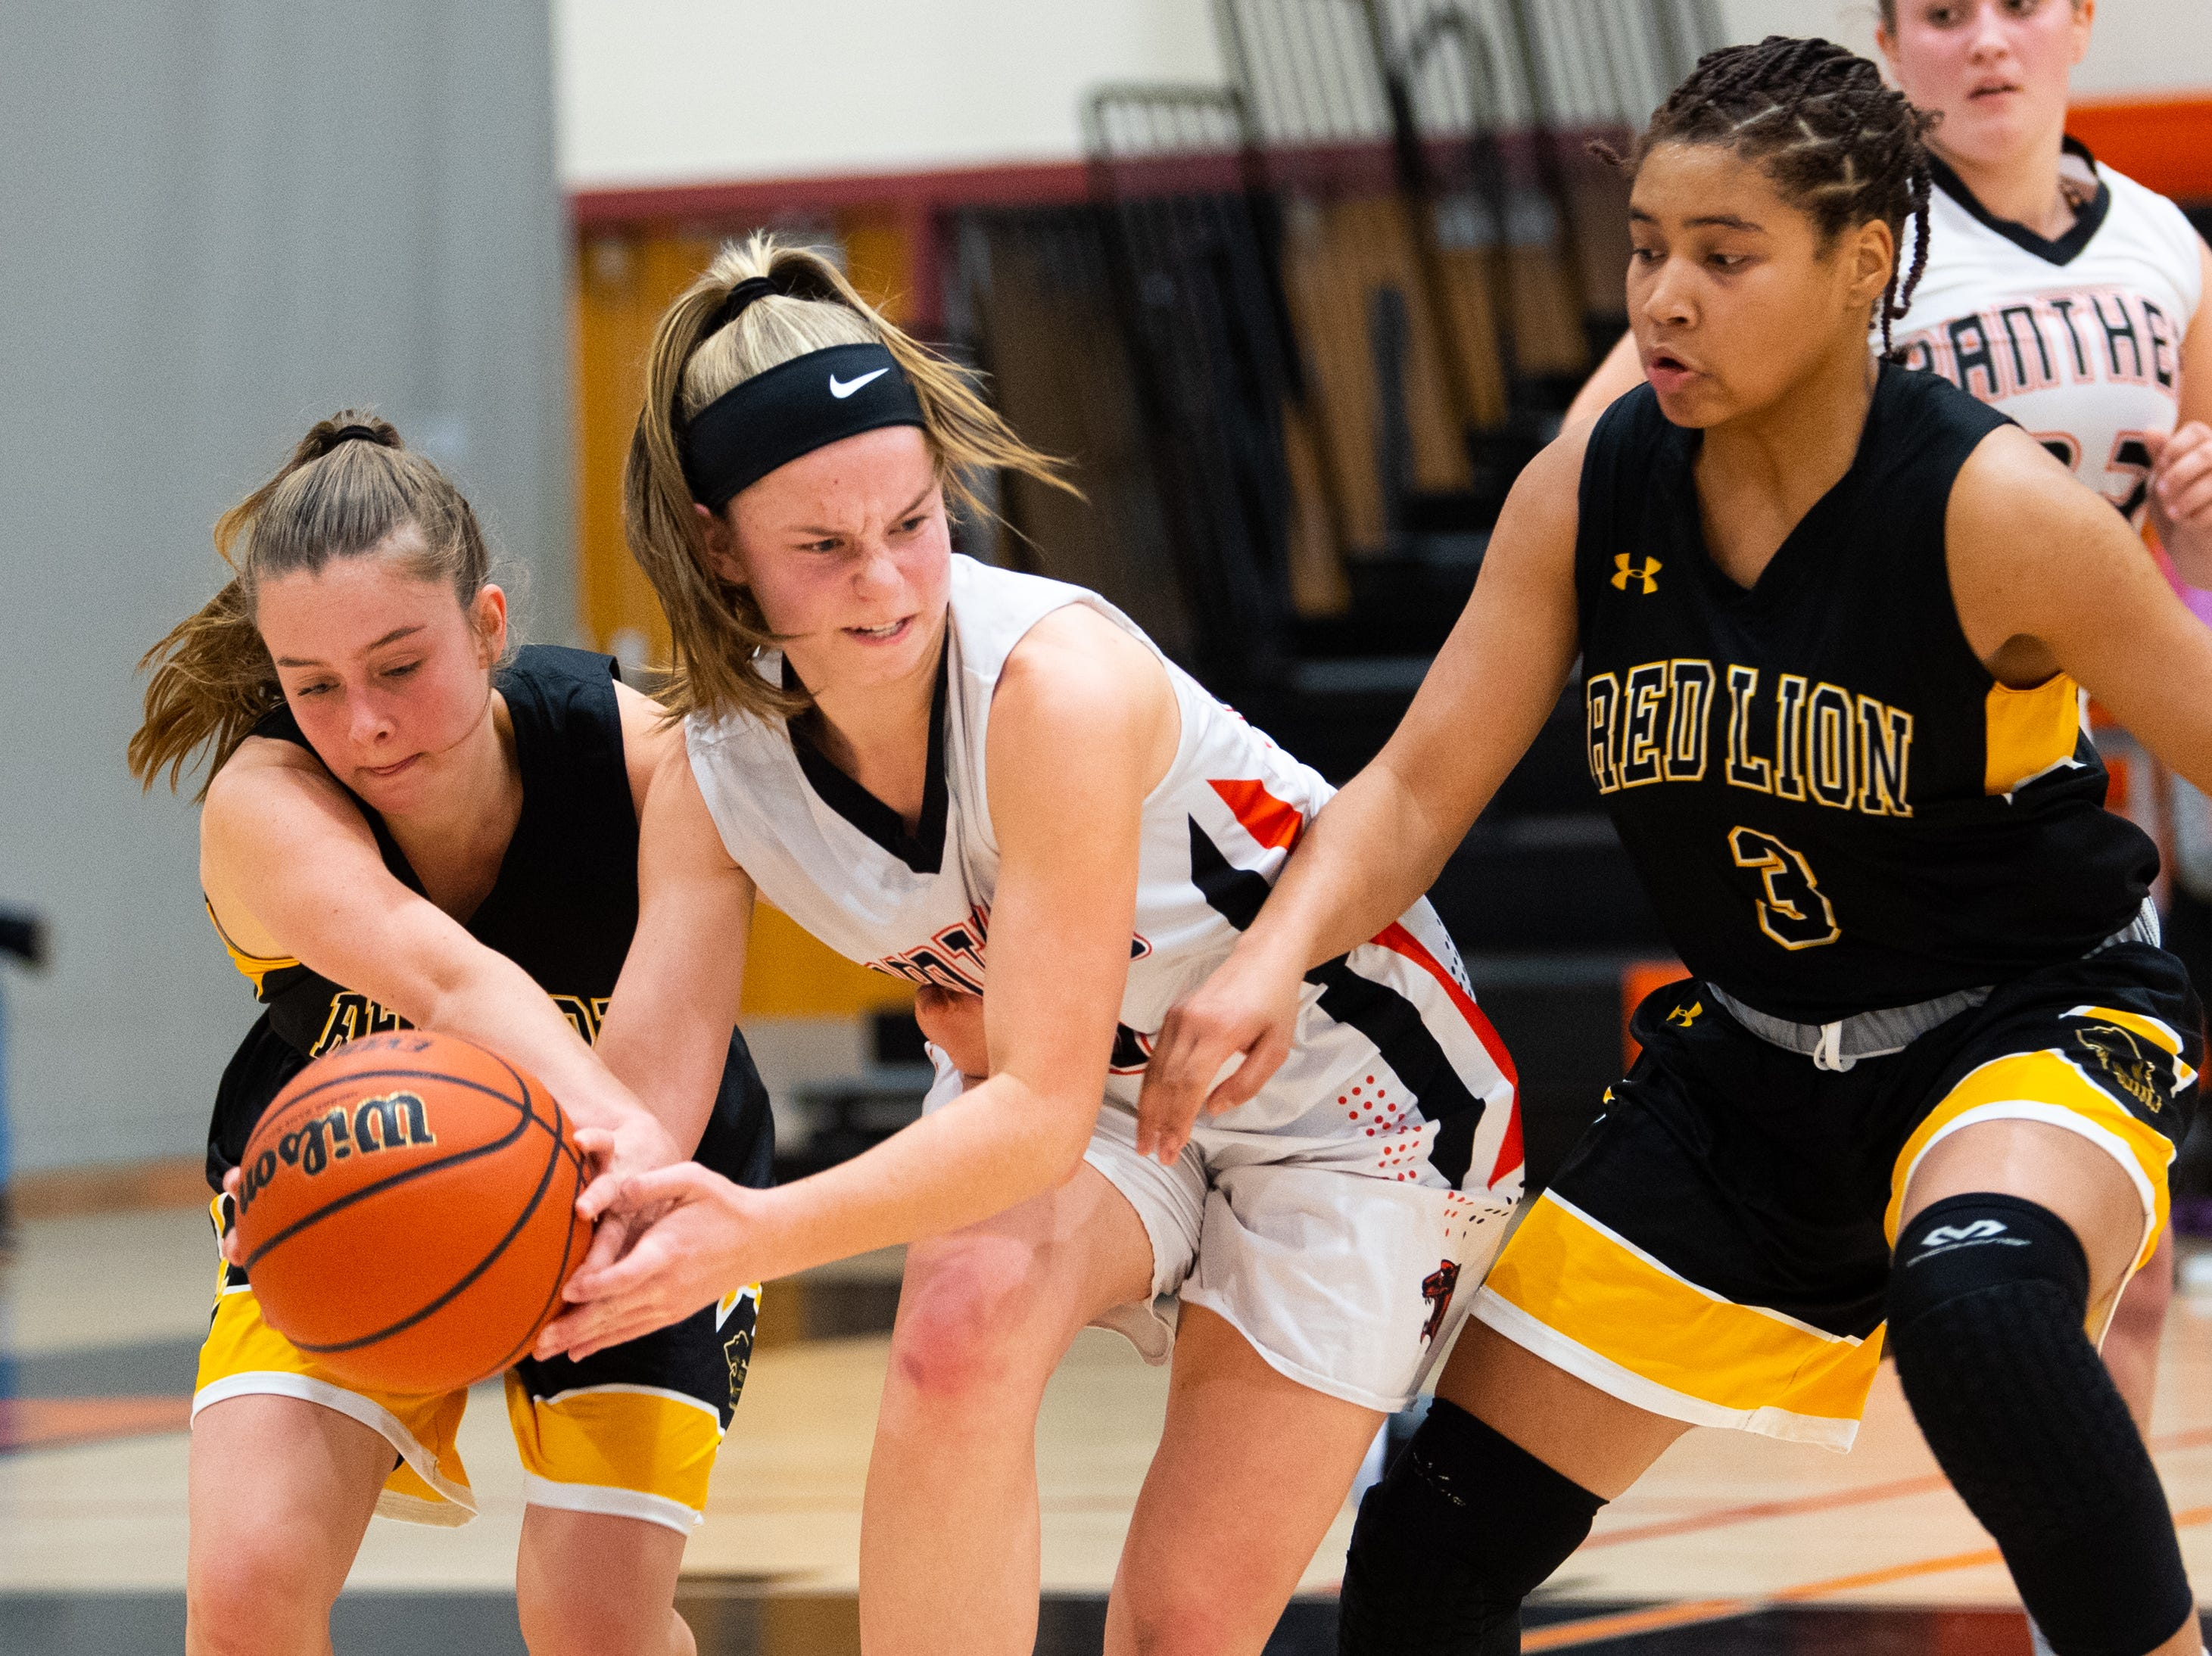 Alleney Klunk (10) and Asia Eames (3) of Red Lion try to steal the ball from Sarah Berman (23) of Central York during the girls' basketball game, Tuesday, December 11, 2018. The Panthers defeated the Lions 40-38.